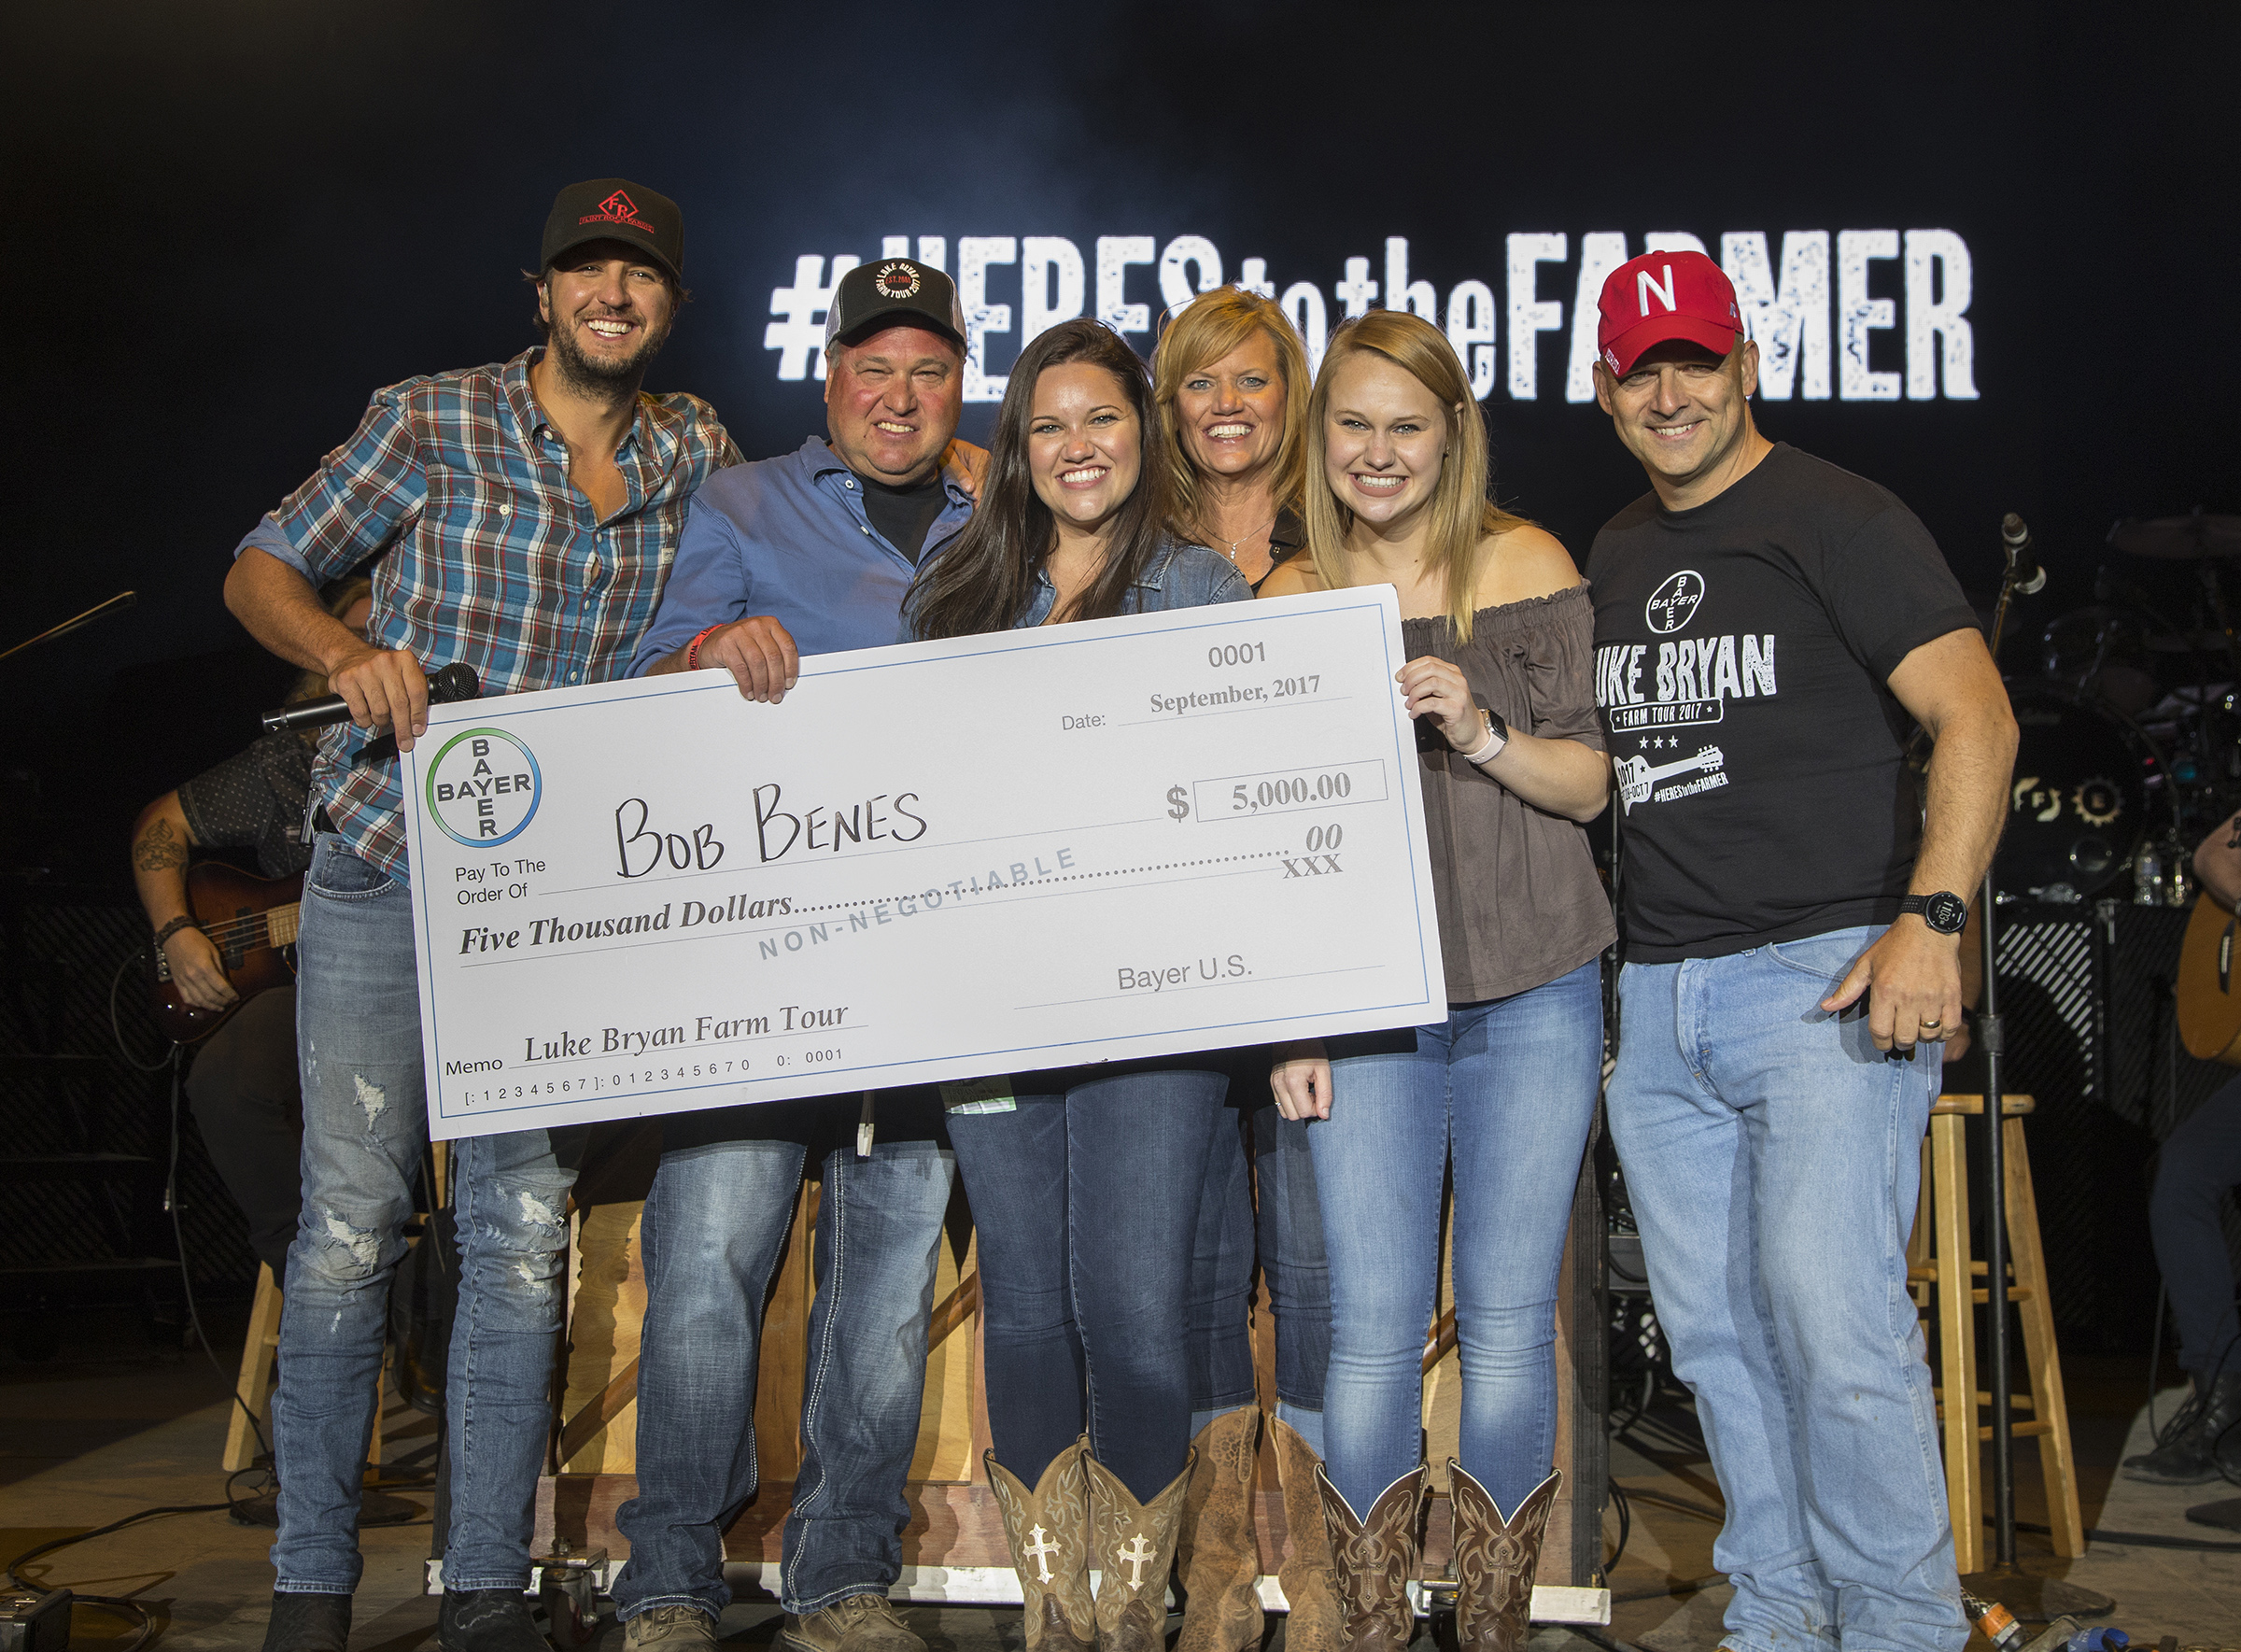 Bayer's Here's To The Farmer campaign also donated over $10,000 to local food banks and honored a local farmer on stage with Luke Bryan at each location